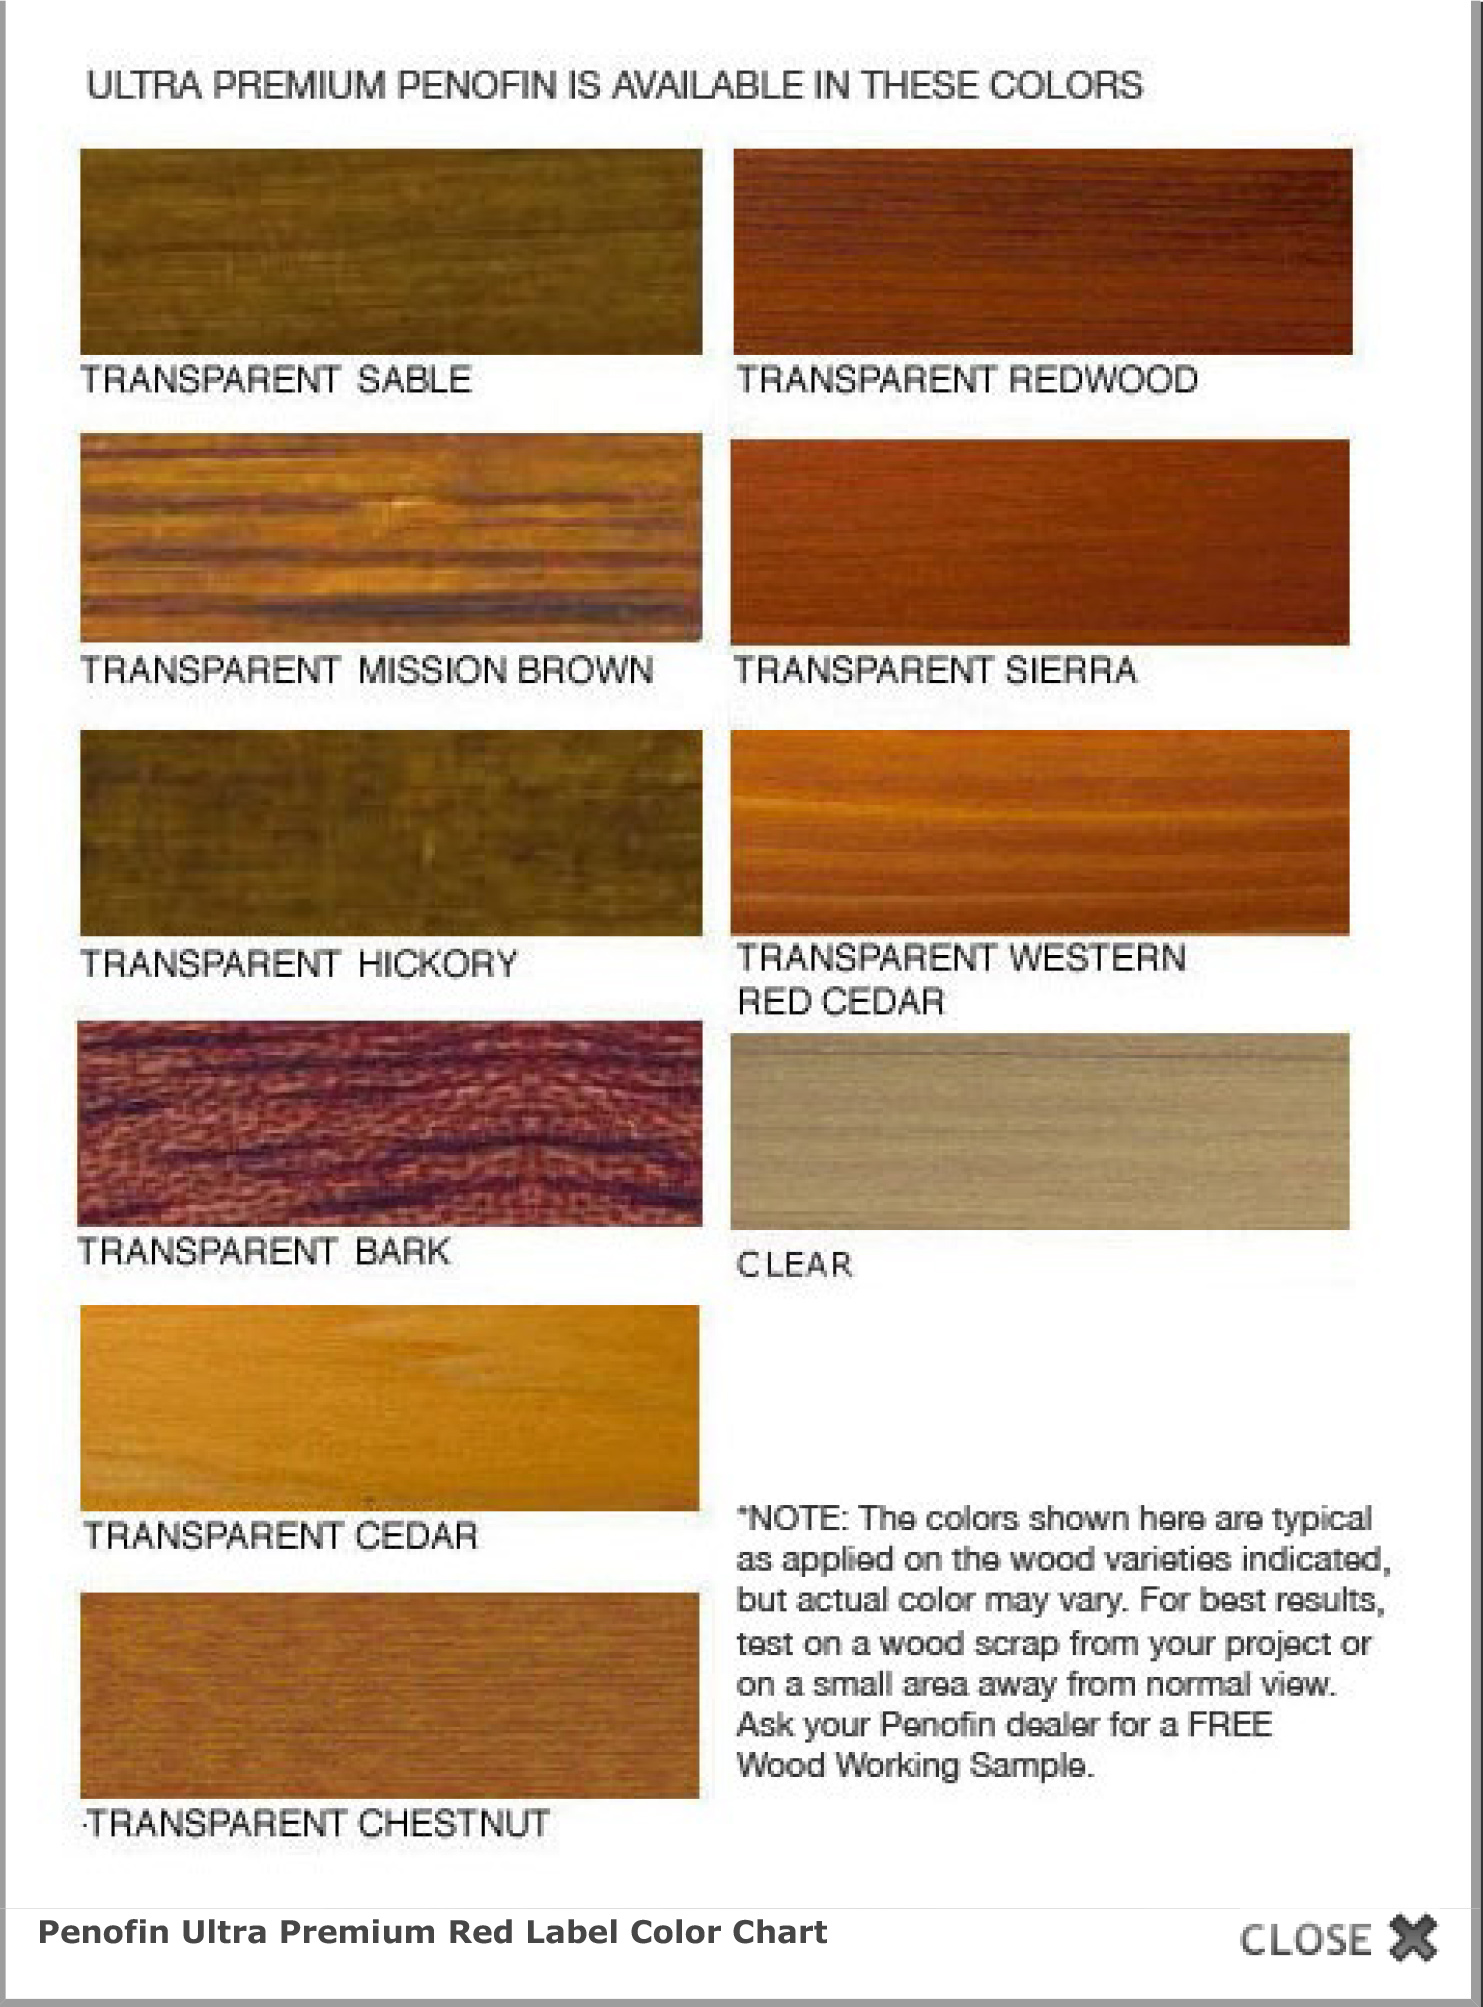 Ultra Premium Red Label Wood Stain Finish | Penofin